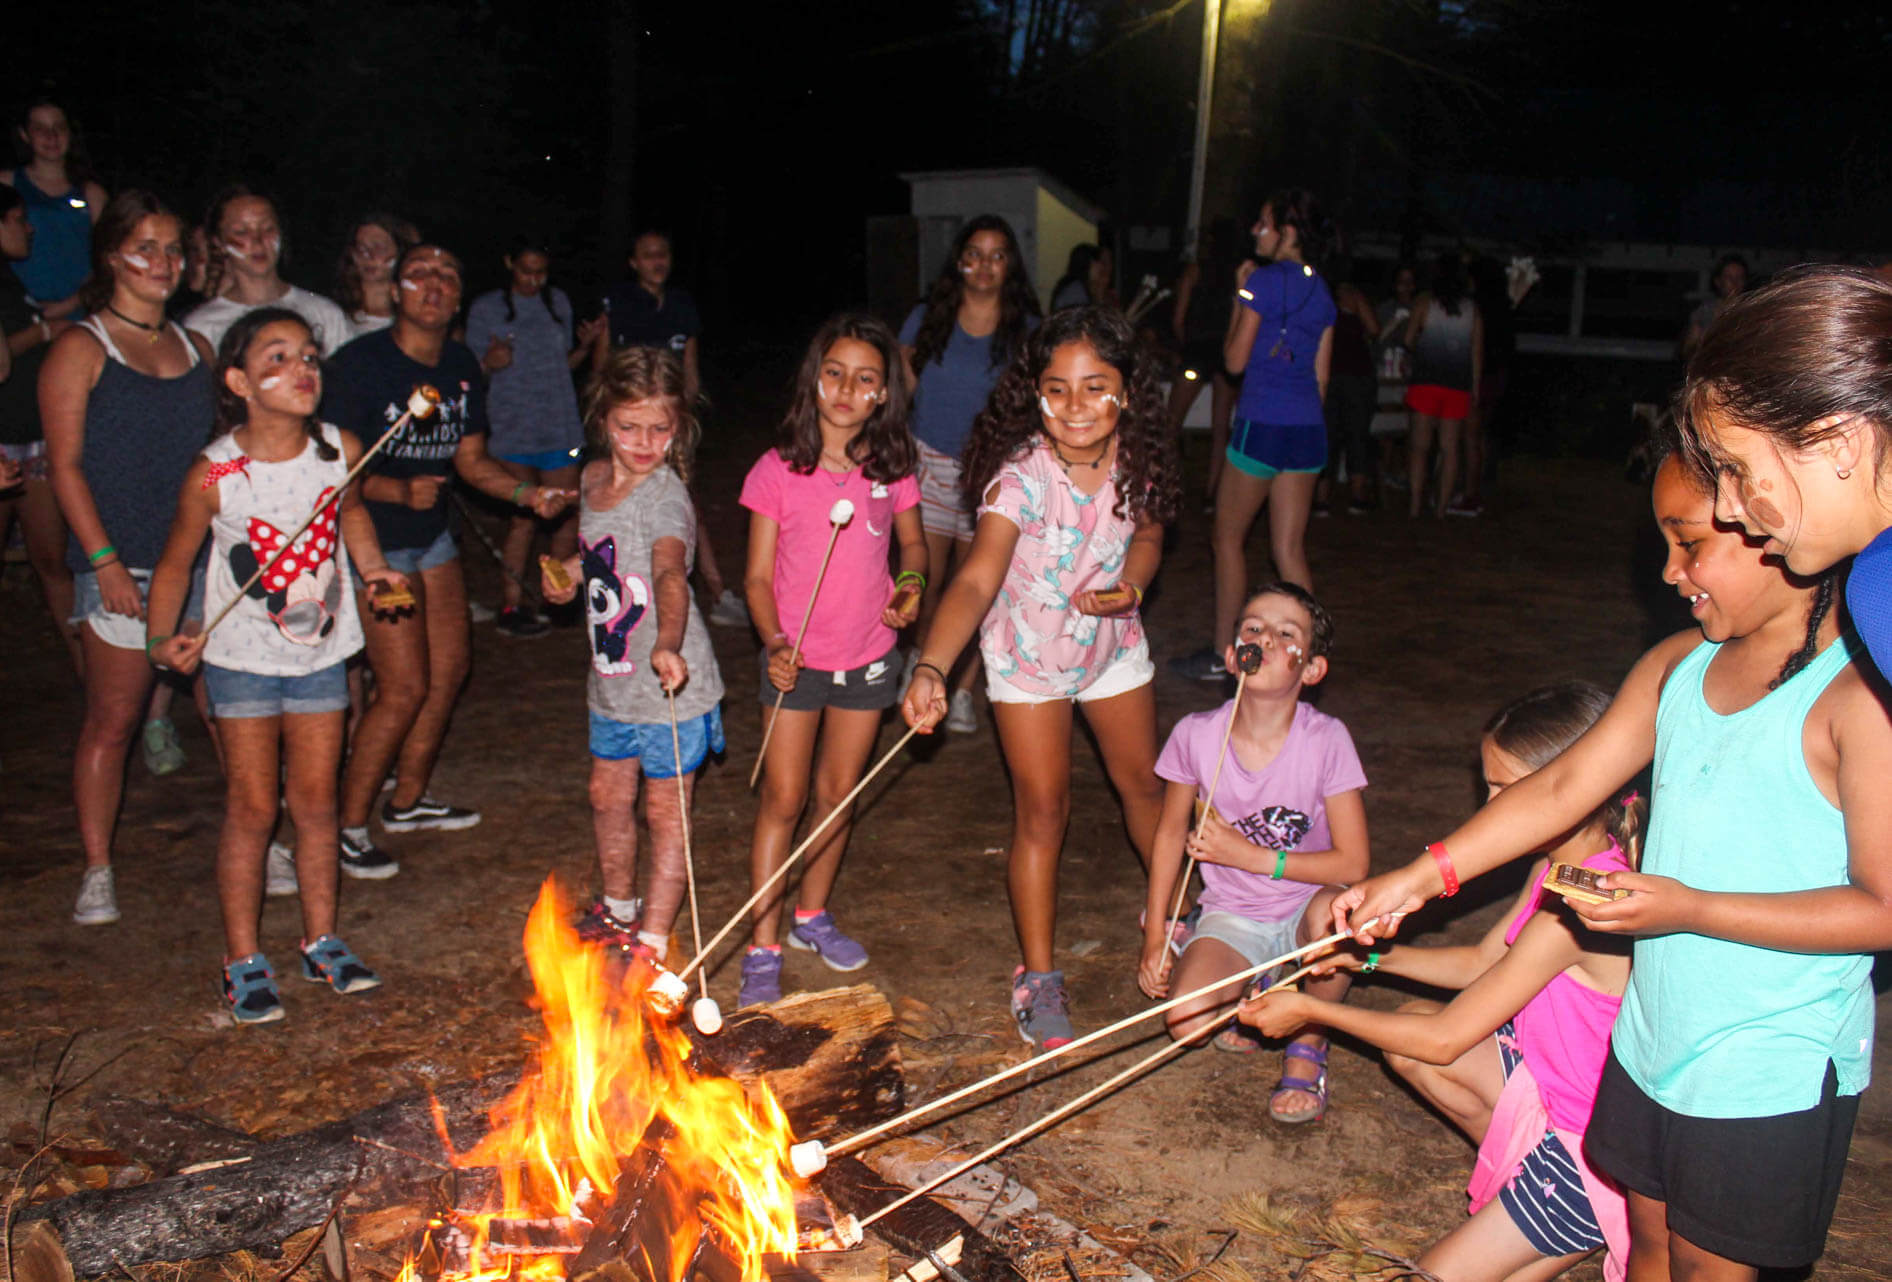 Campers roast marshmallows over fire